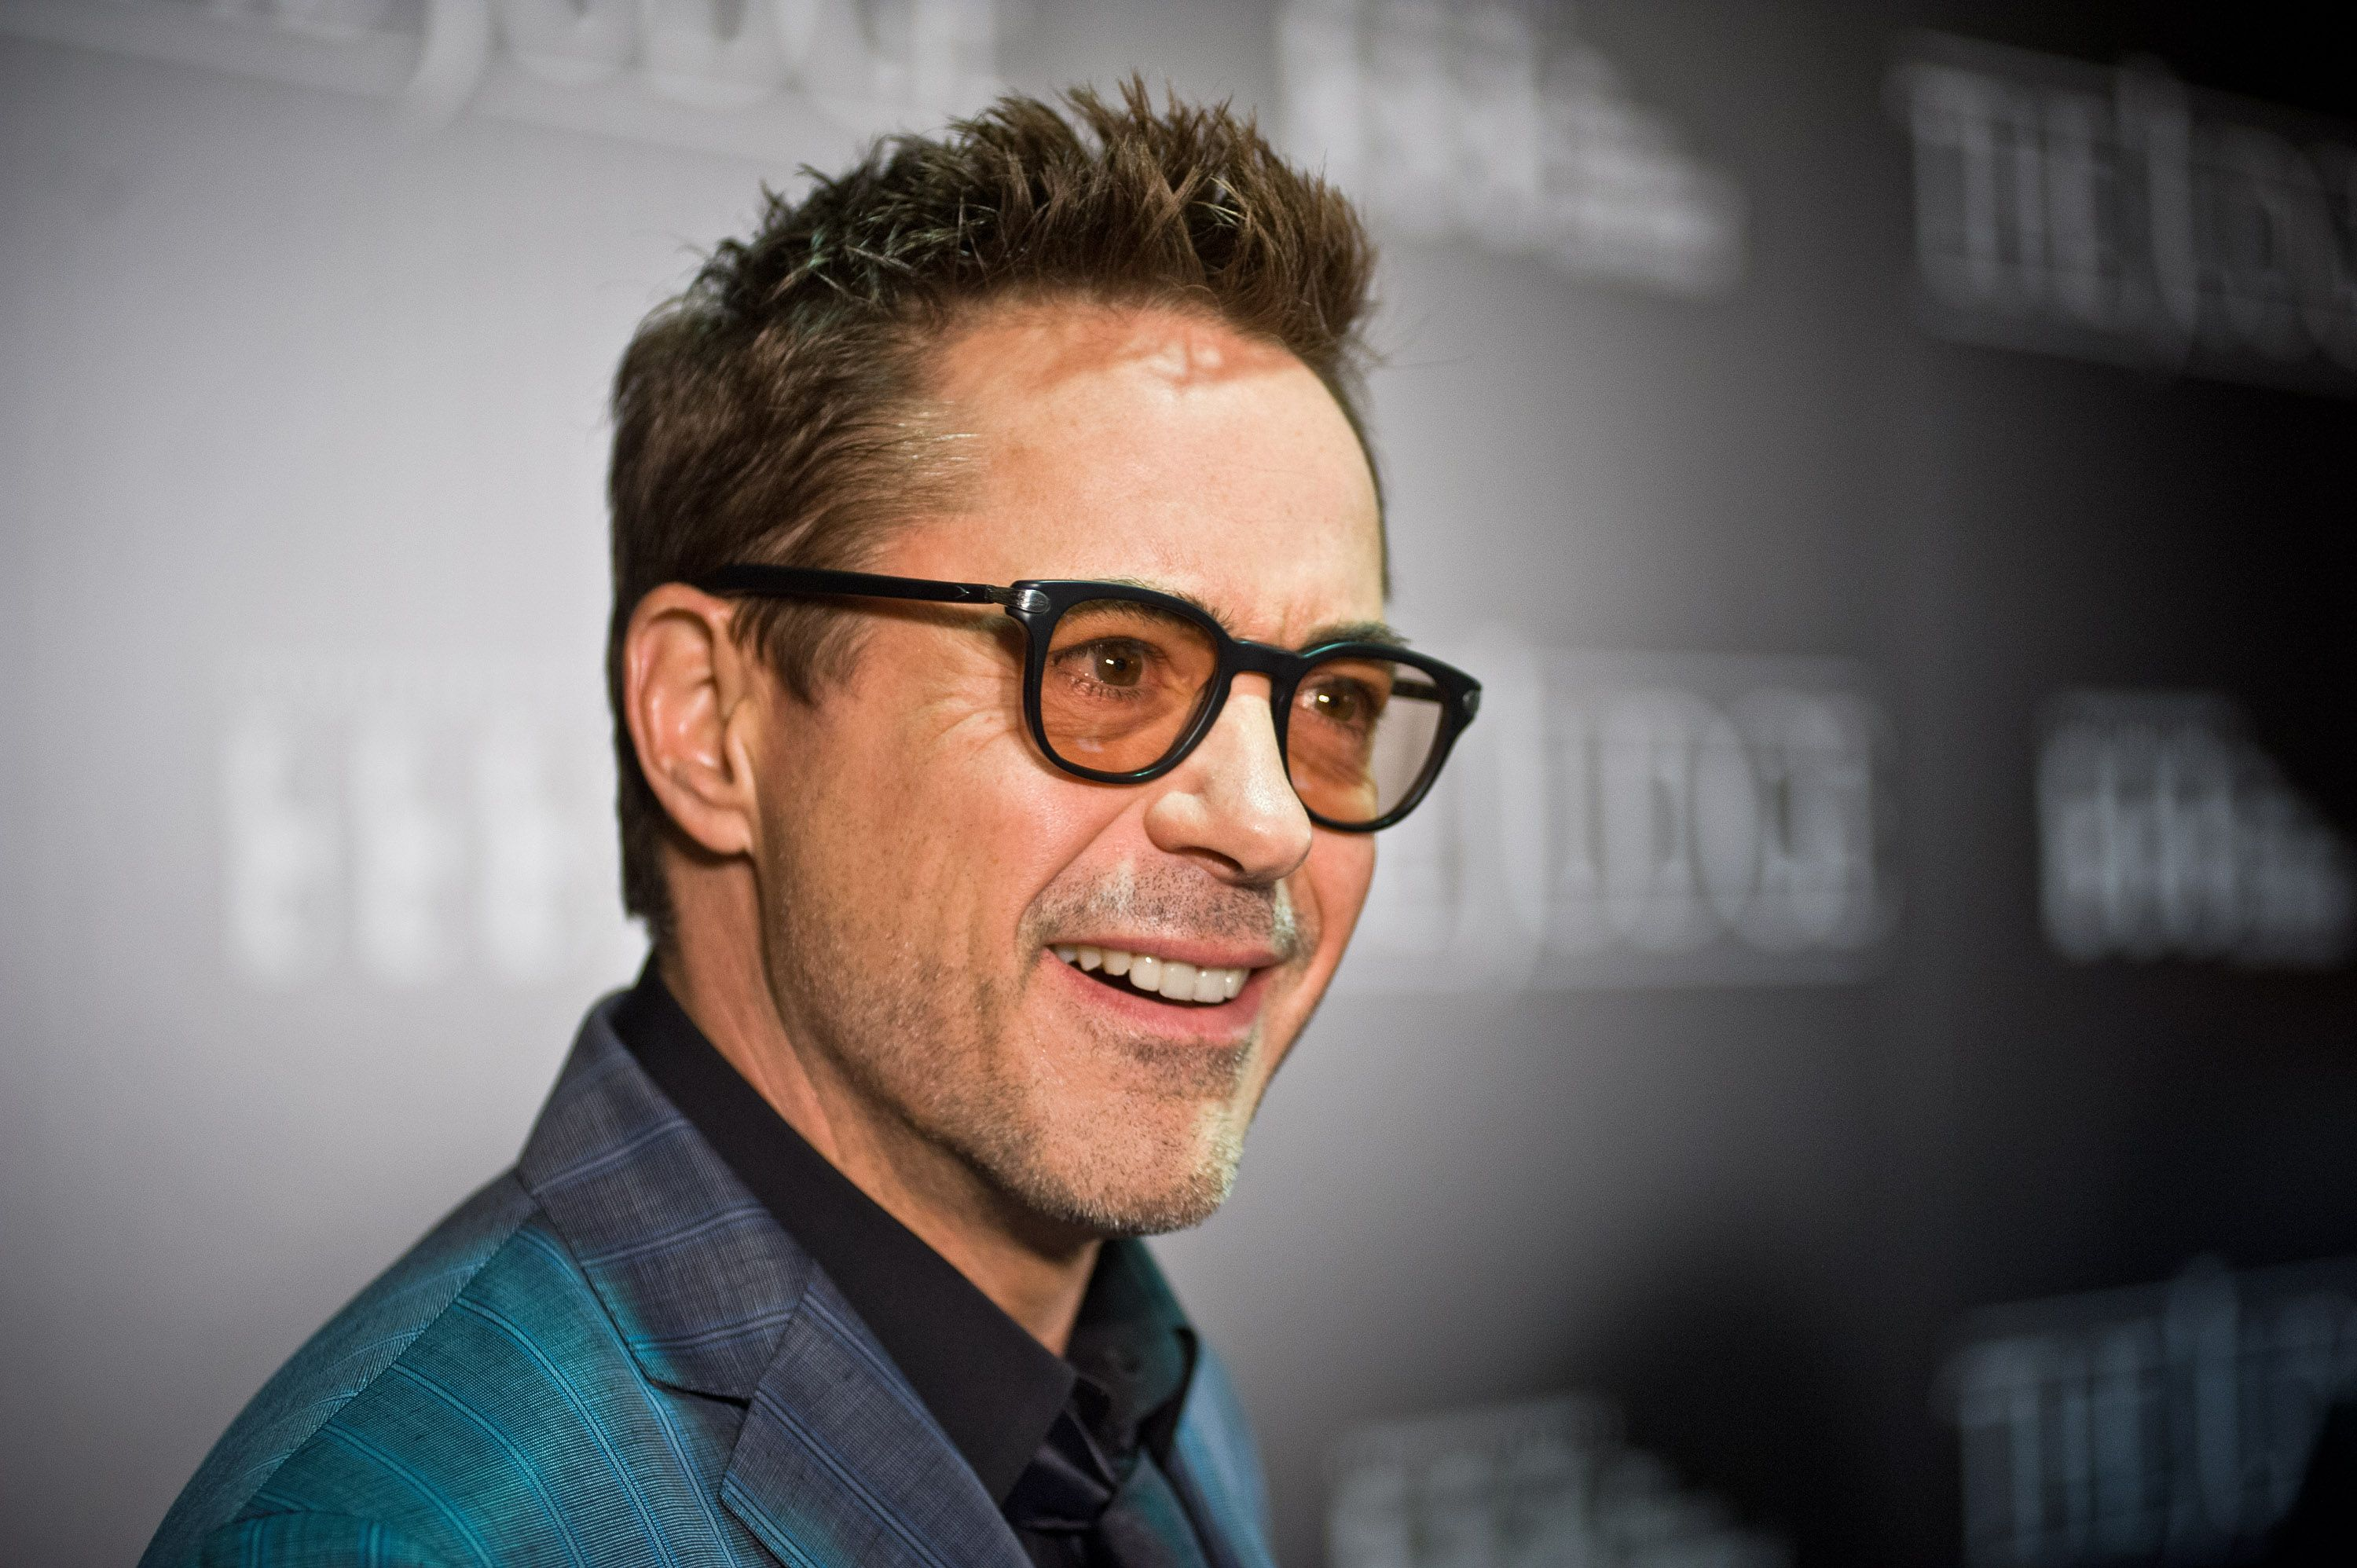 Robert Downey Jr. Is the Highest-Paid Actor on Earth